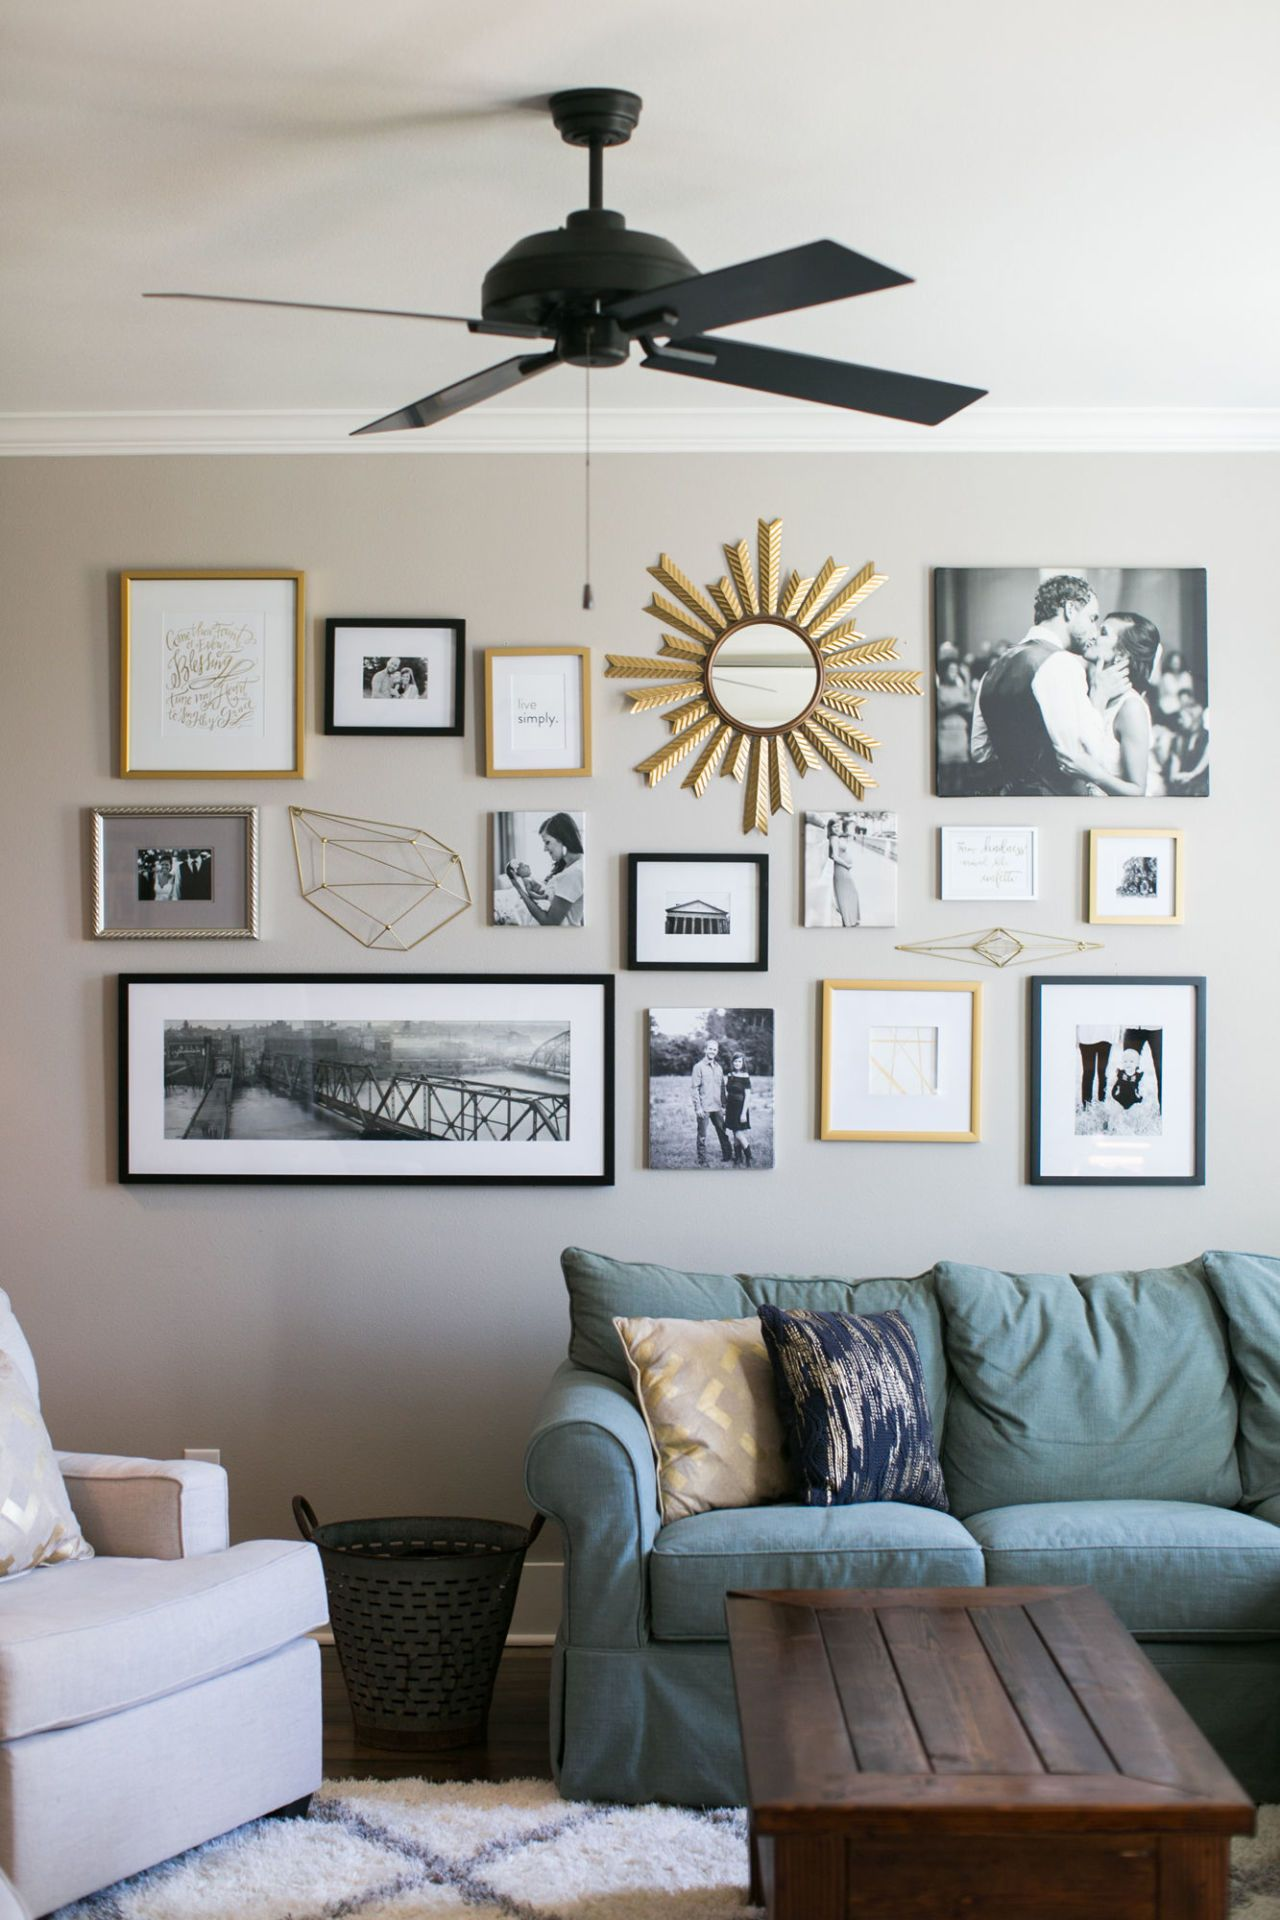 Joanna gaines hallway decor  This Is What Itus Really Like to Be on HGTVus